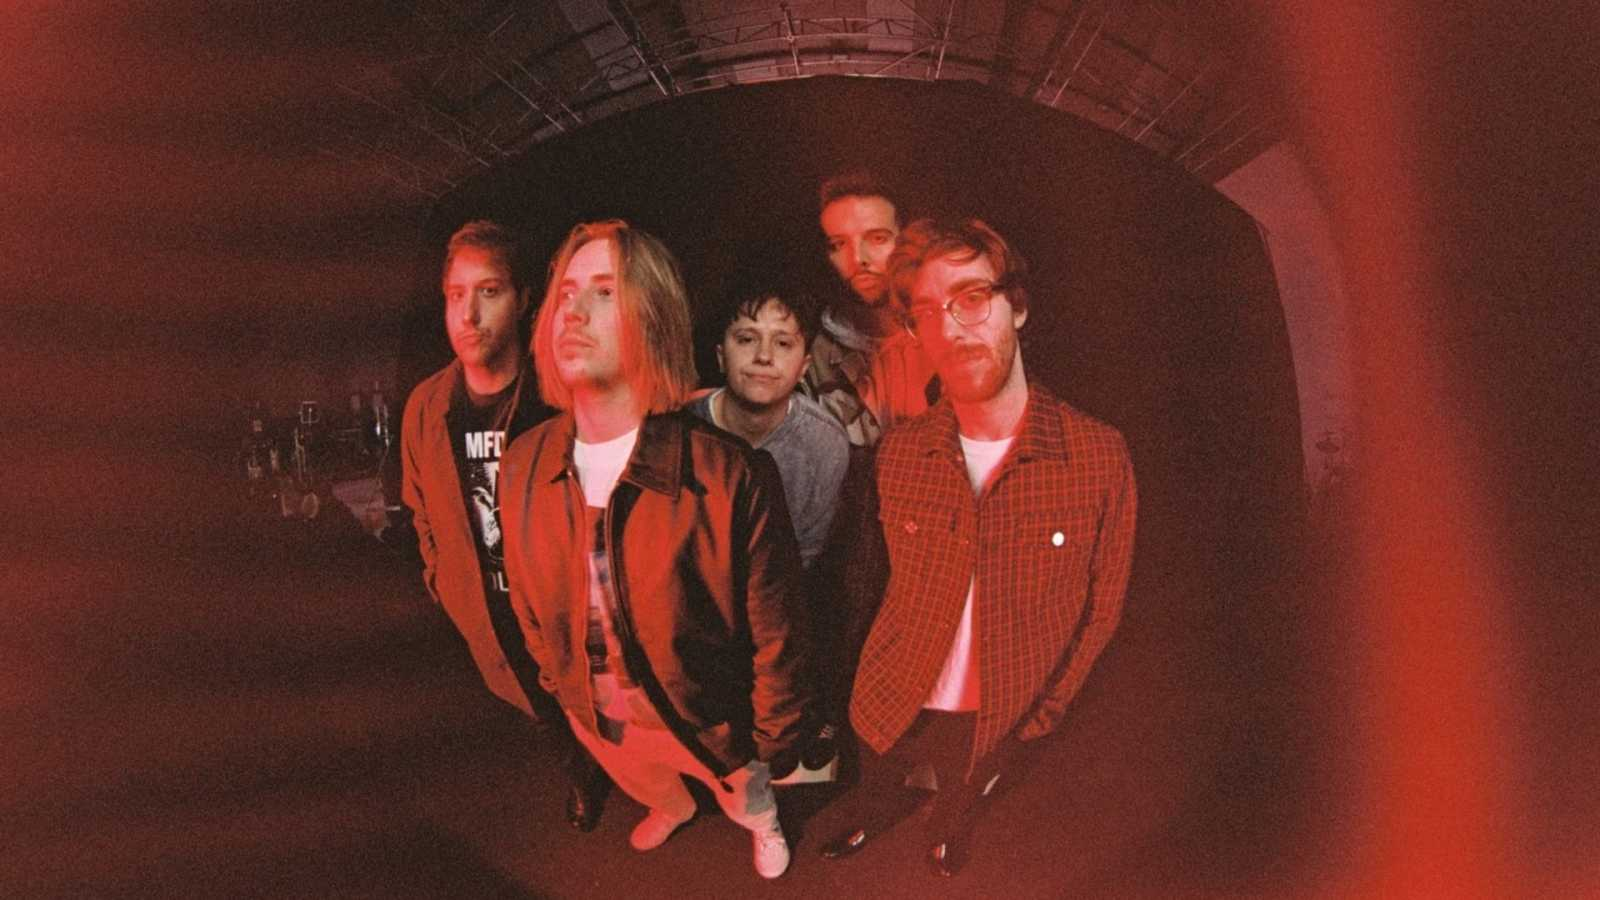 Turbo 3 - Nothing But Thieves, beabadoobee, Viagra Boys, Kitai y Bronquio - 15/10/20 - escuchar ahora